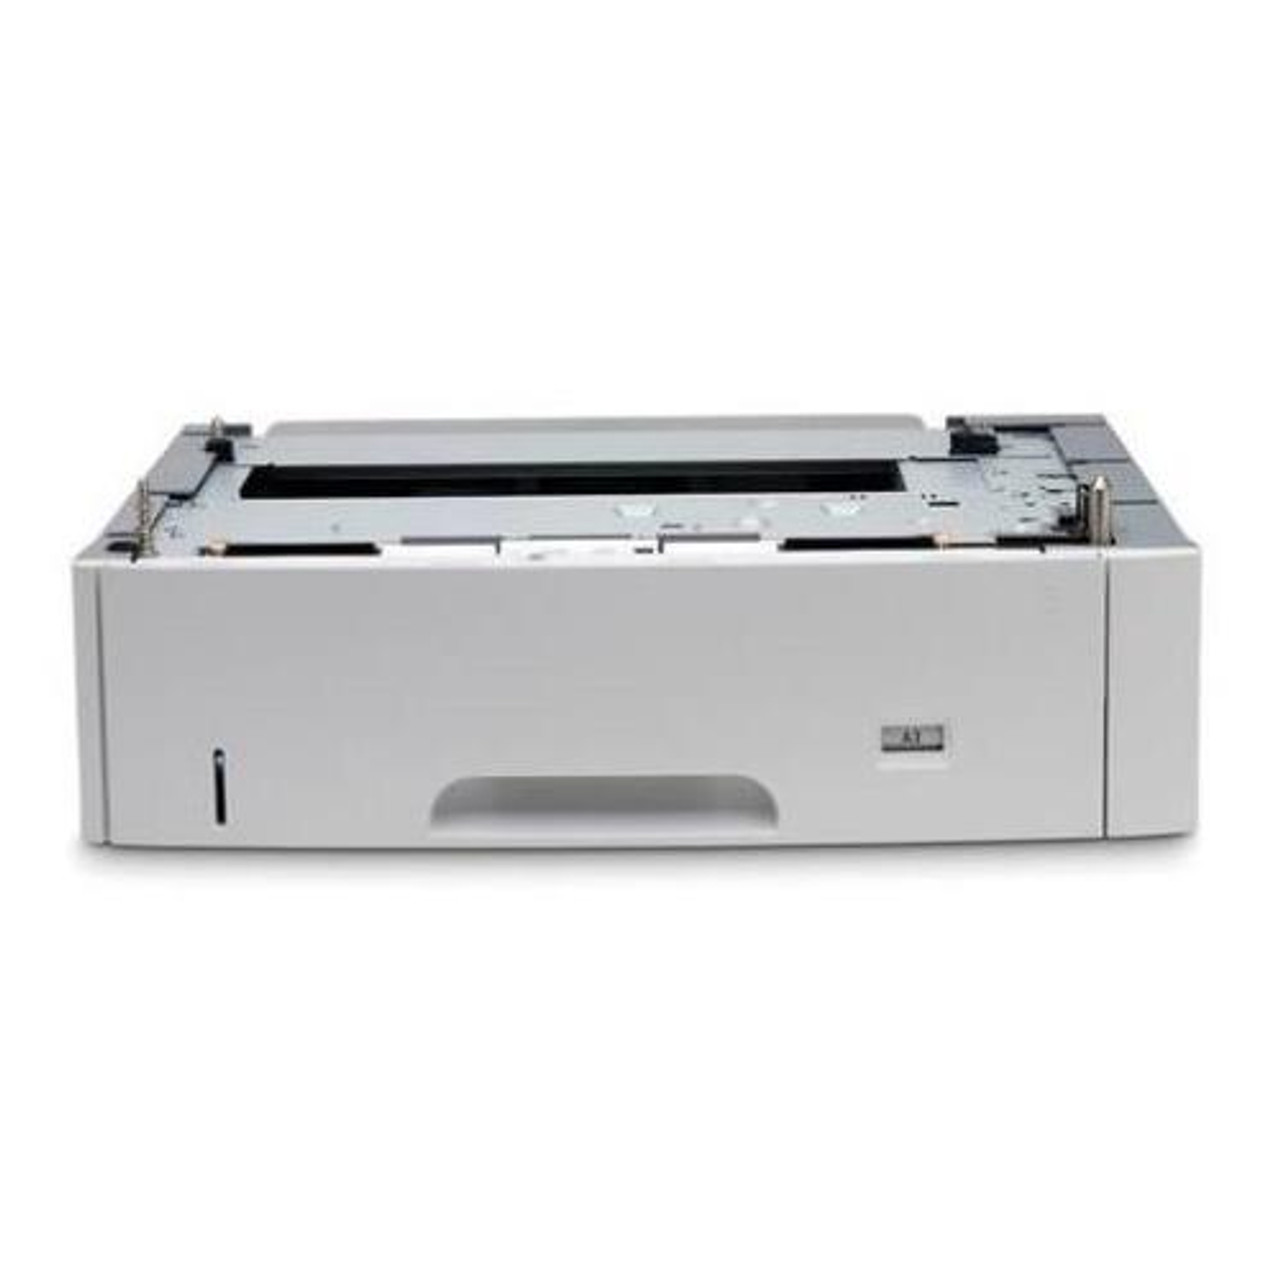 HP RM1-1486-000CN OEM 250 sheet paper tray cassette Pull out cassette that the